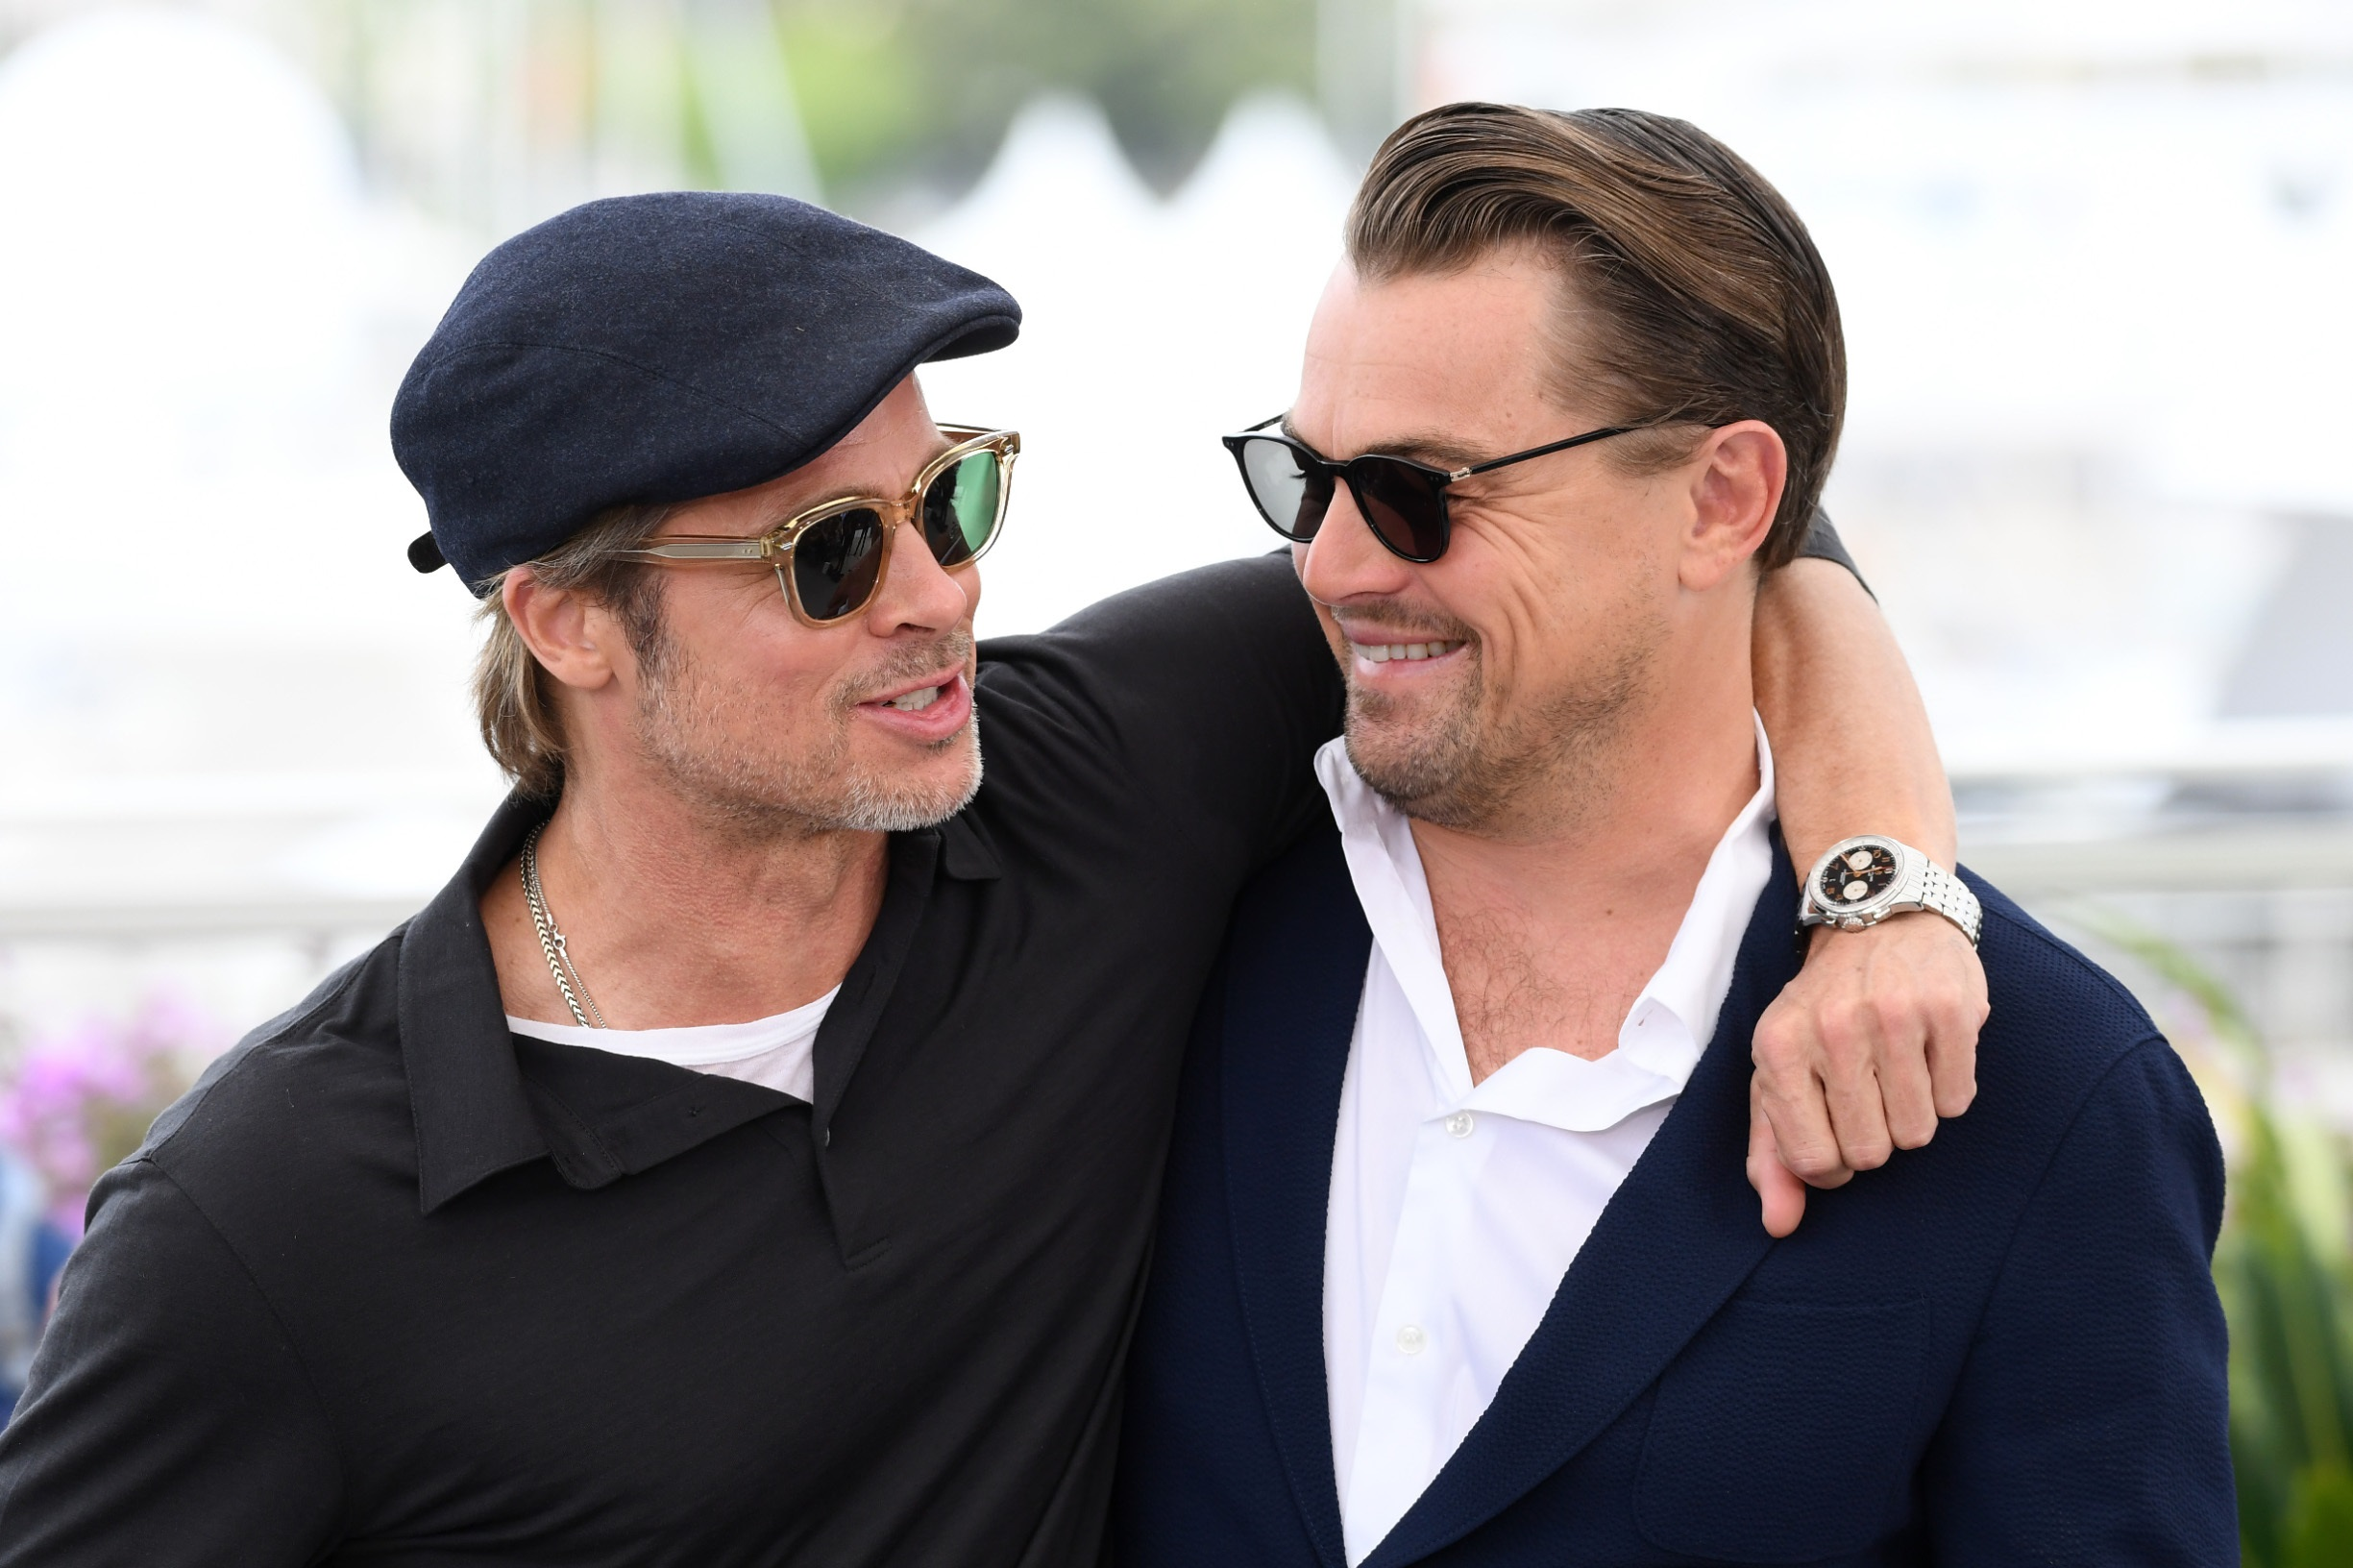 CANNES, FRANCE - MAY 22: Brad Pitt and Leonardo DiCaprio attend the photocall for